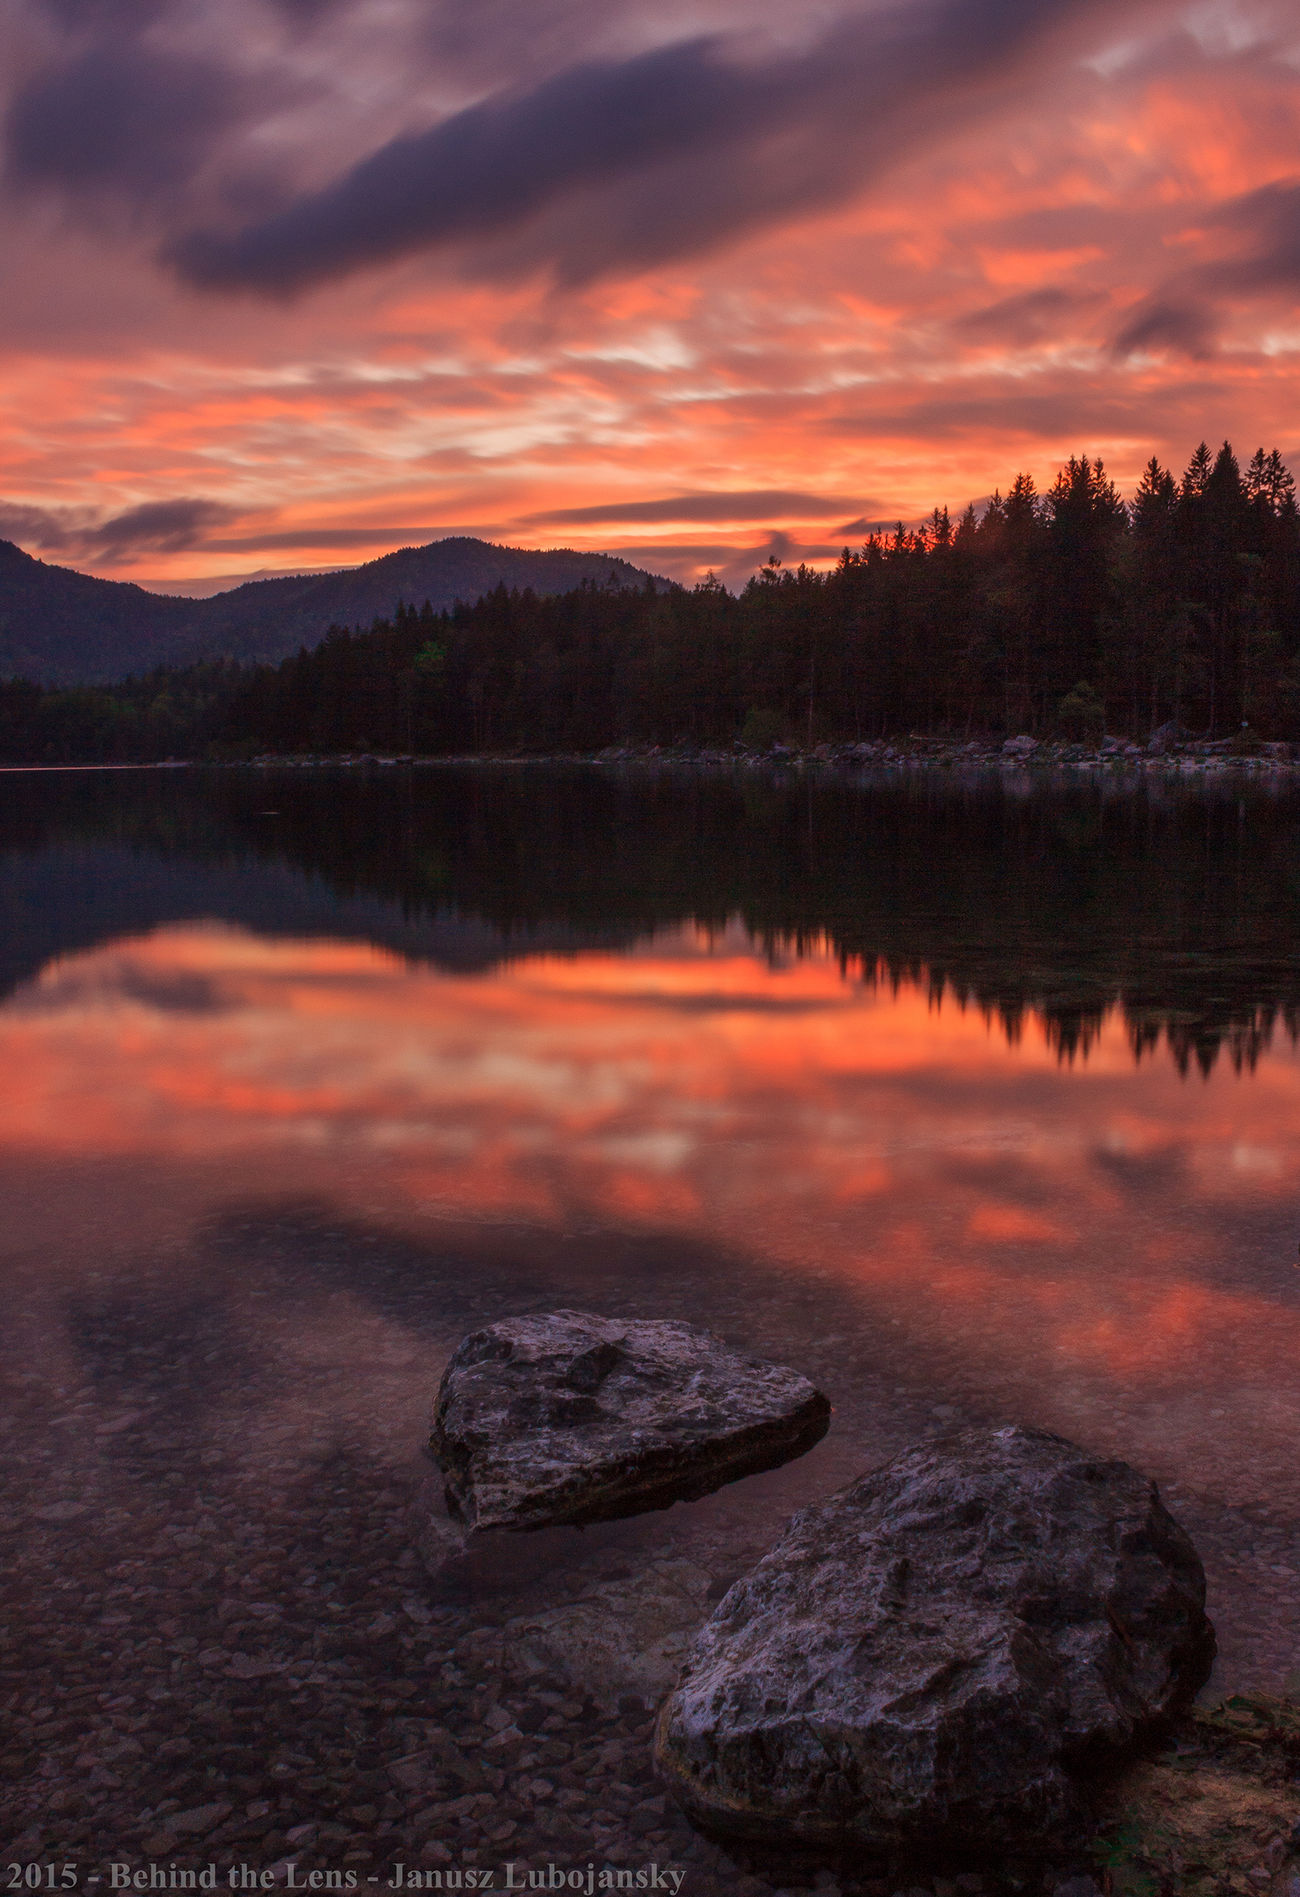 Bavaria Berge Clouds Clouds And Sky Germany Lake Landscape Landscapes Landschaft Mountain Mountains Outdoors Reflection See Sky Sky And Clouds Sonnenuntergang Stones Sunset Sunset_collection Travel Traveling Water Water Reflections Wolken